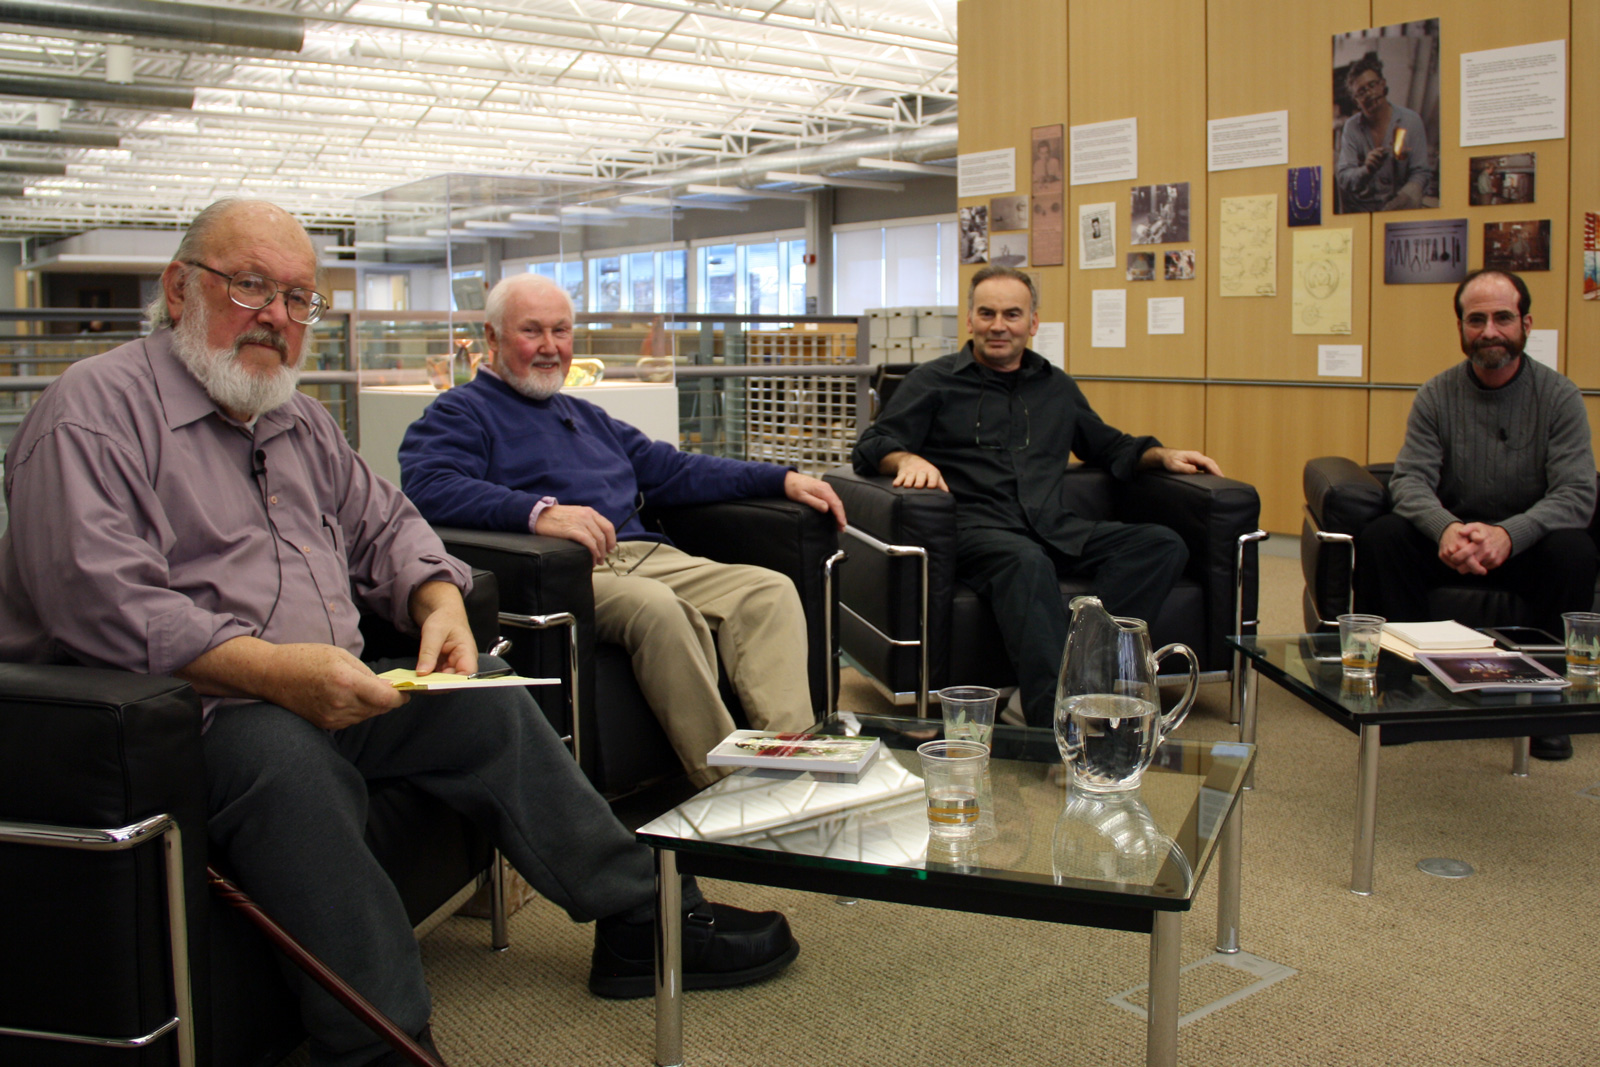 Jim Friant, Paul Stankard, Lucio Bubacco and Brad Turner oral history interview at the Rakow Library